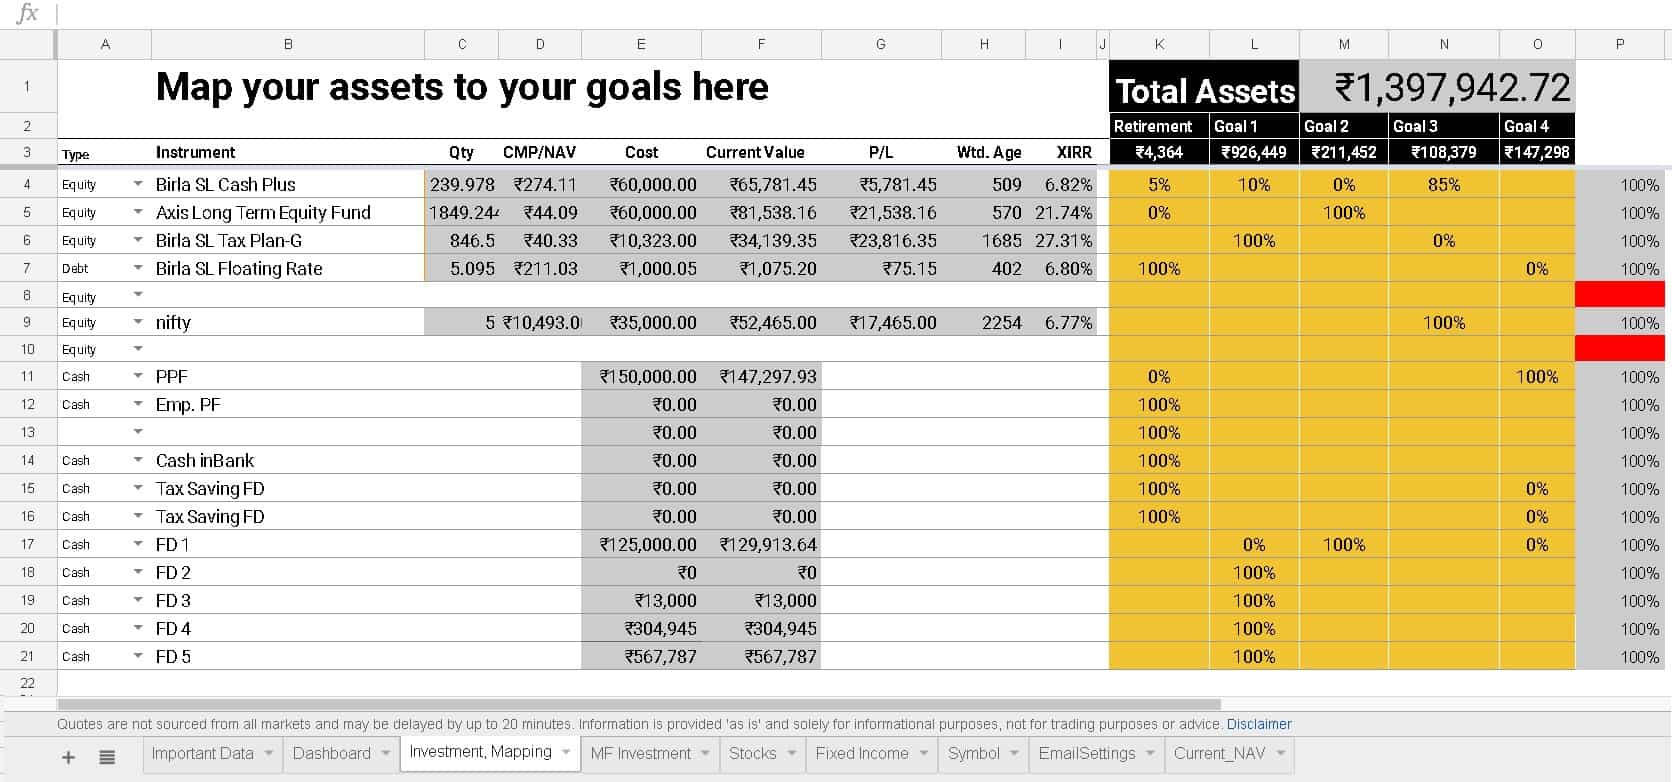 google spreadsheet portfolio tracker: investment mapping